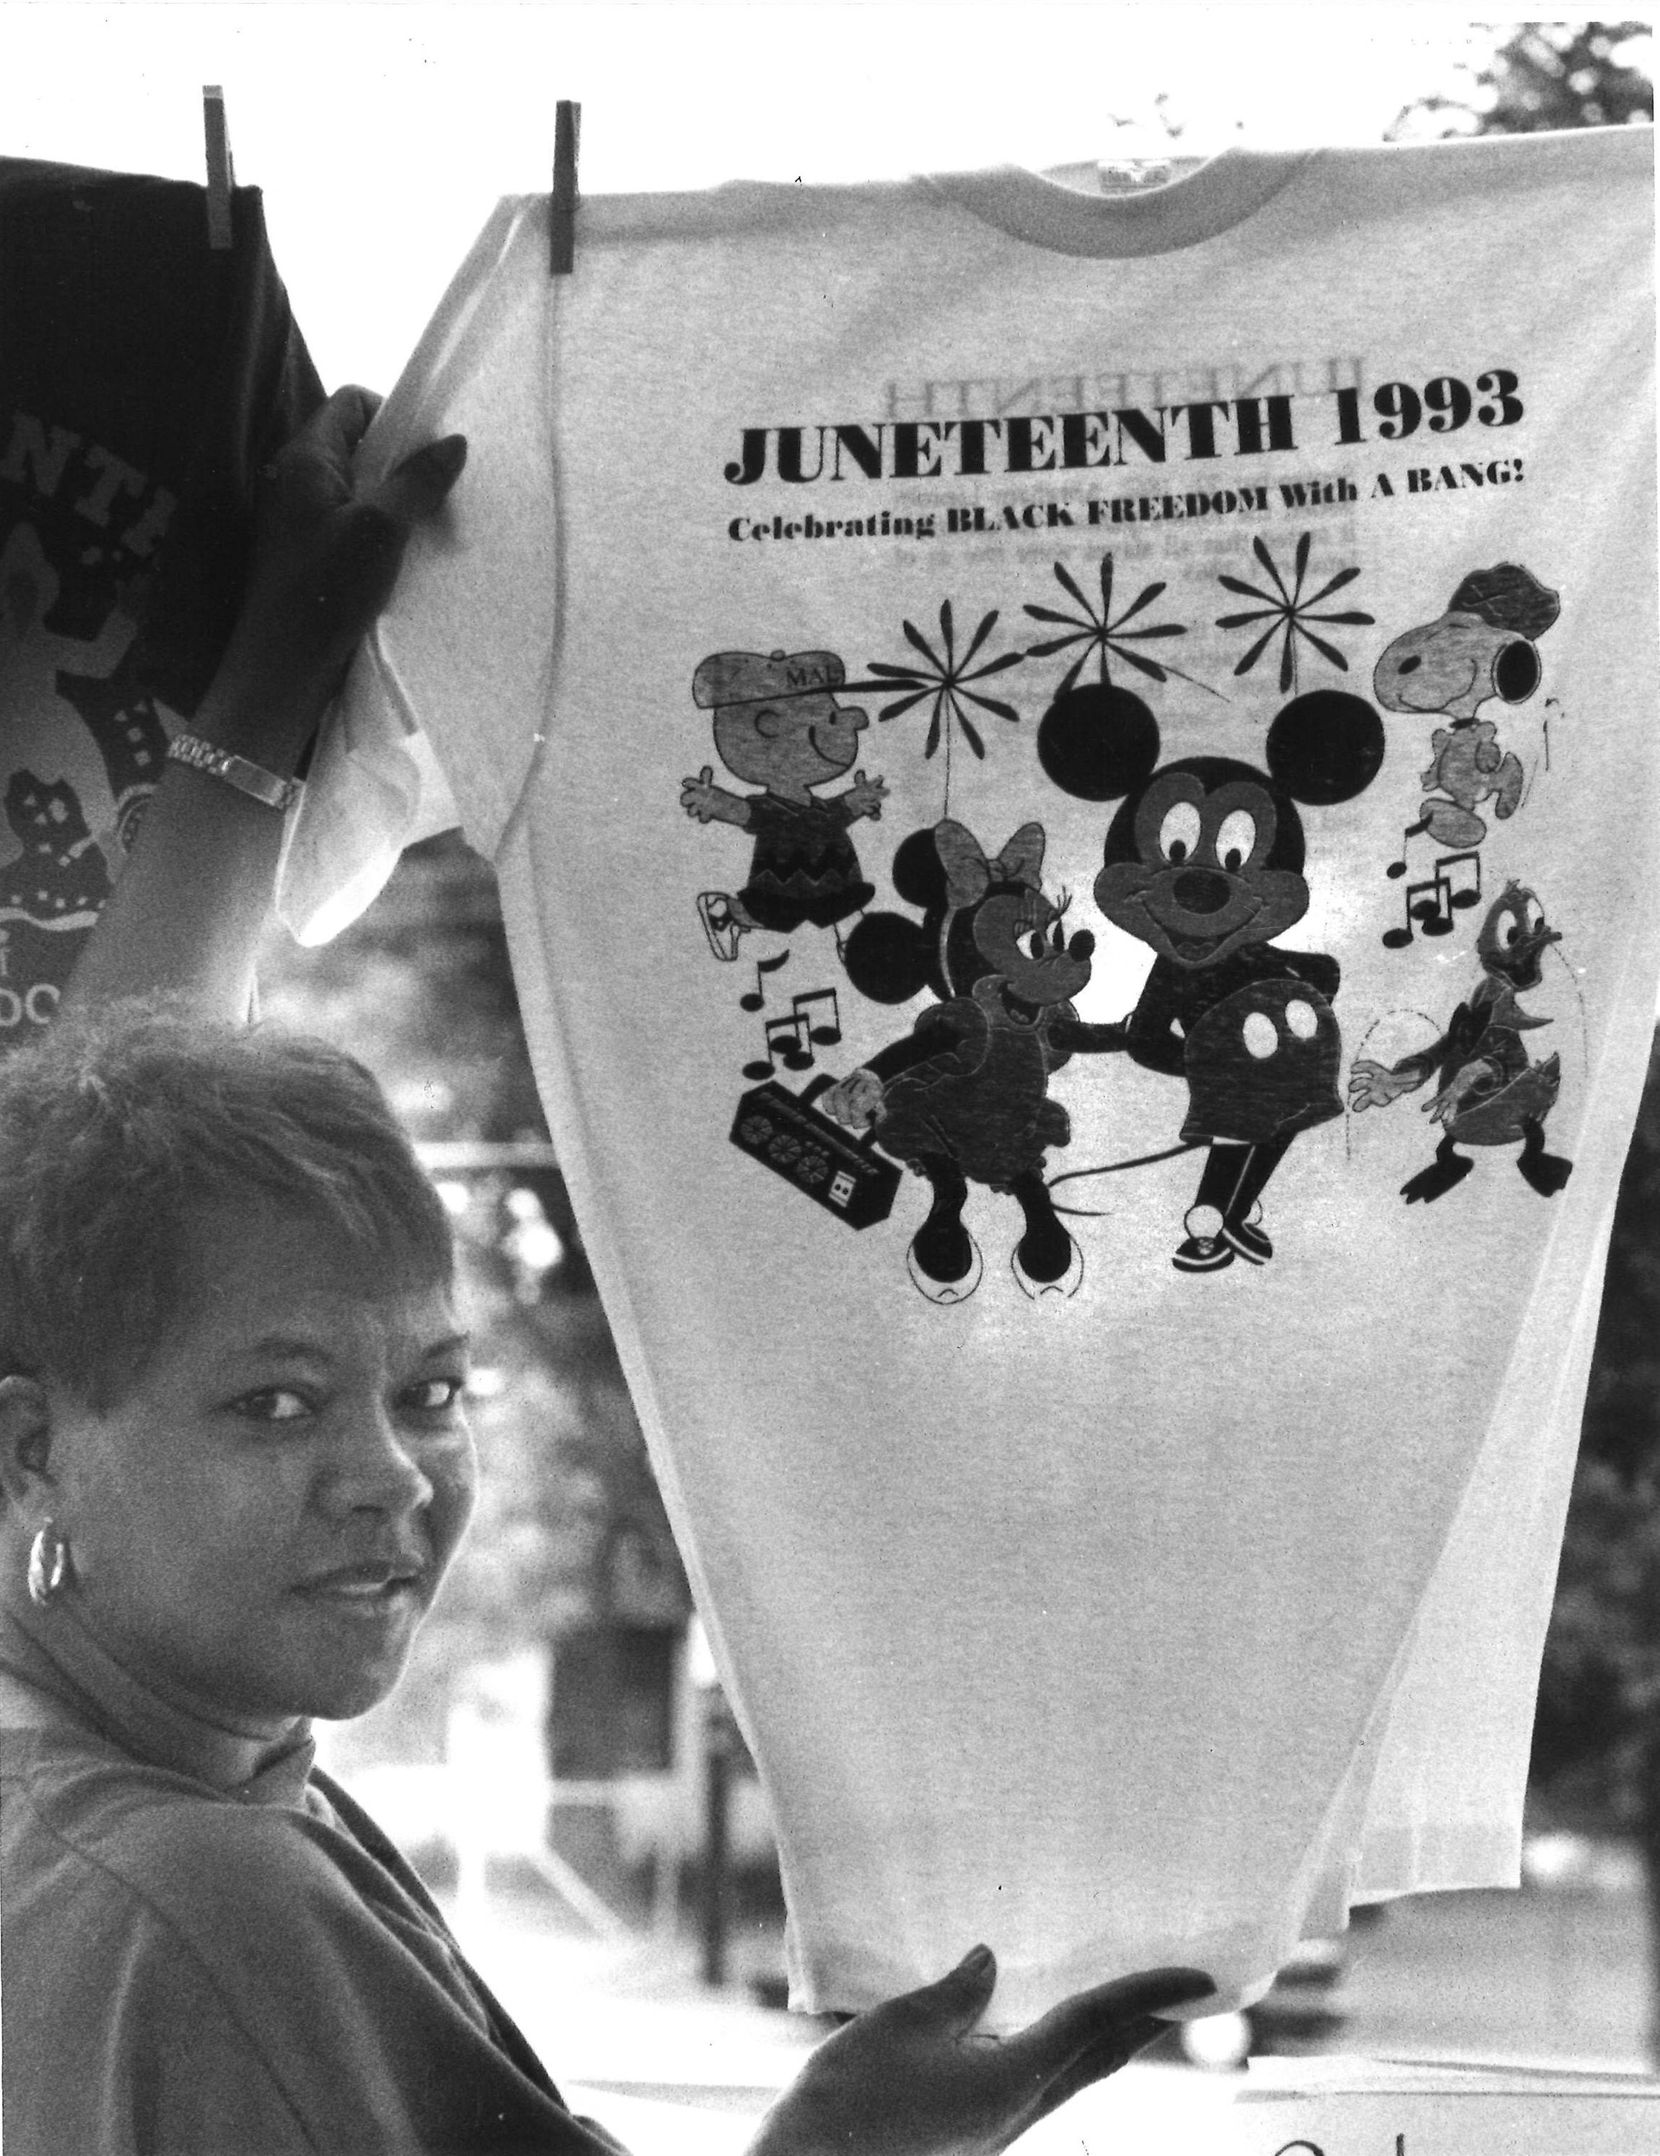 Pat Monroe, a Douglass Community Center volunteer, displayed a T-shirt offered for sale during the Juneteenth celebration in 1993,  which included a parade.